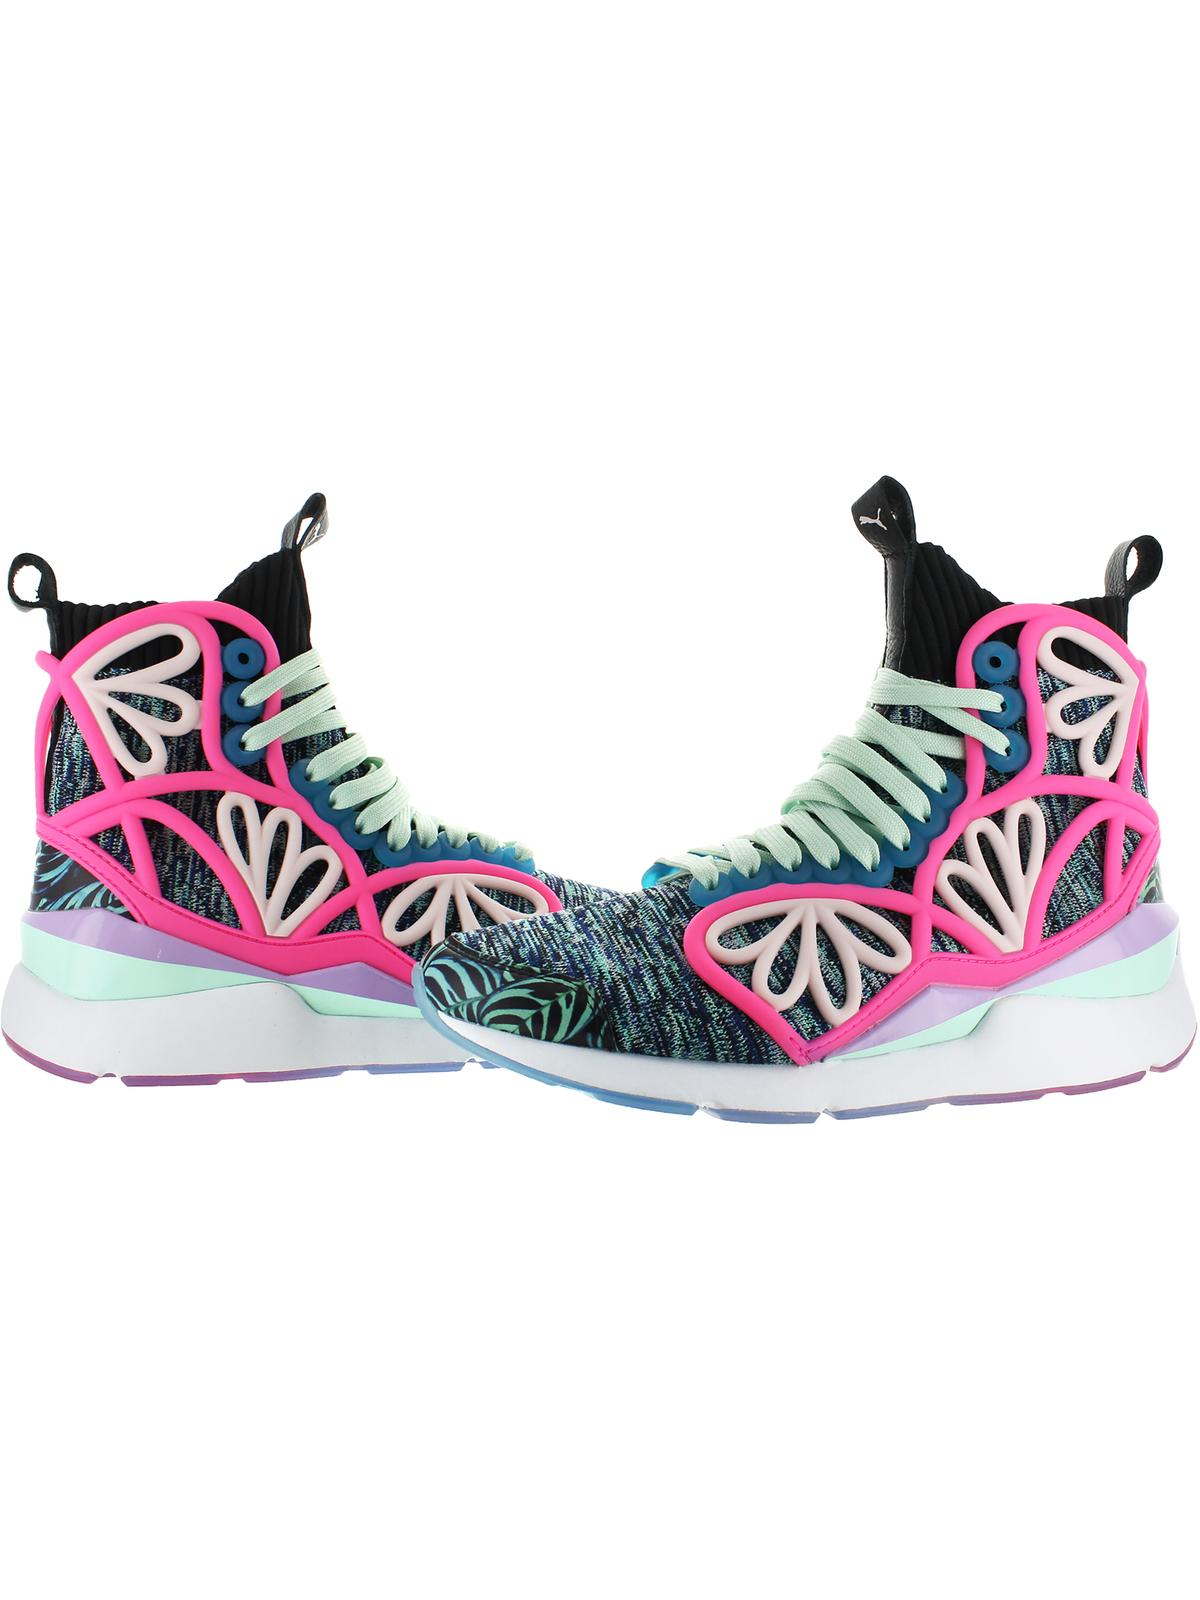 Puma Womens Pearl Cage Graph Mid Knit Printed Fashion Sneakers